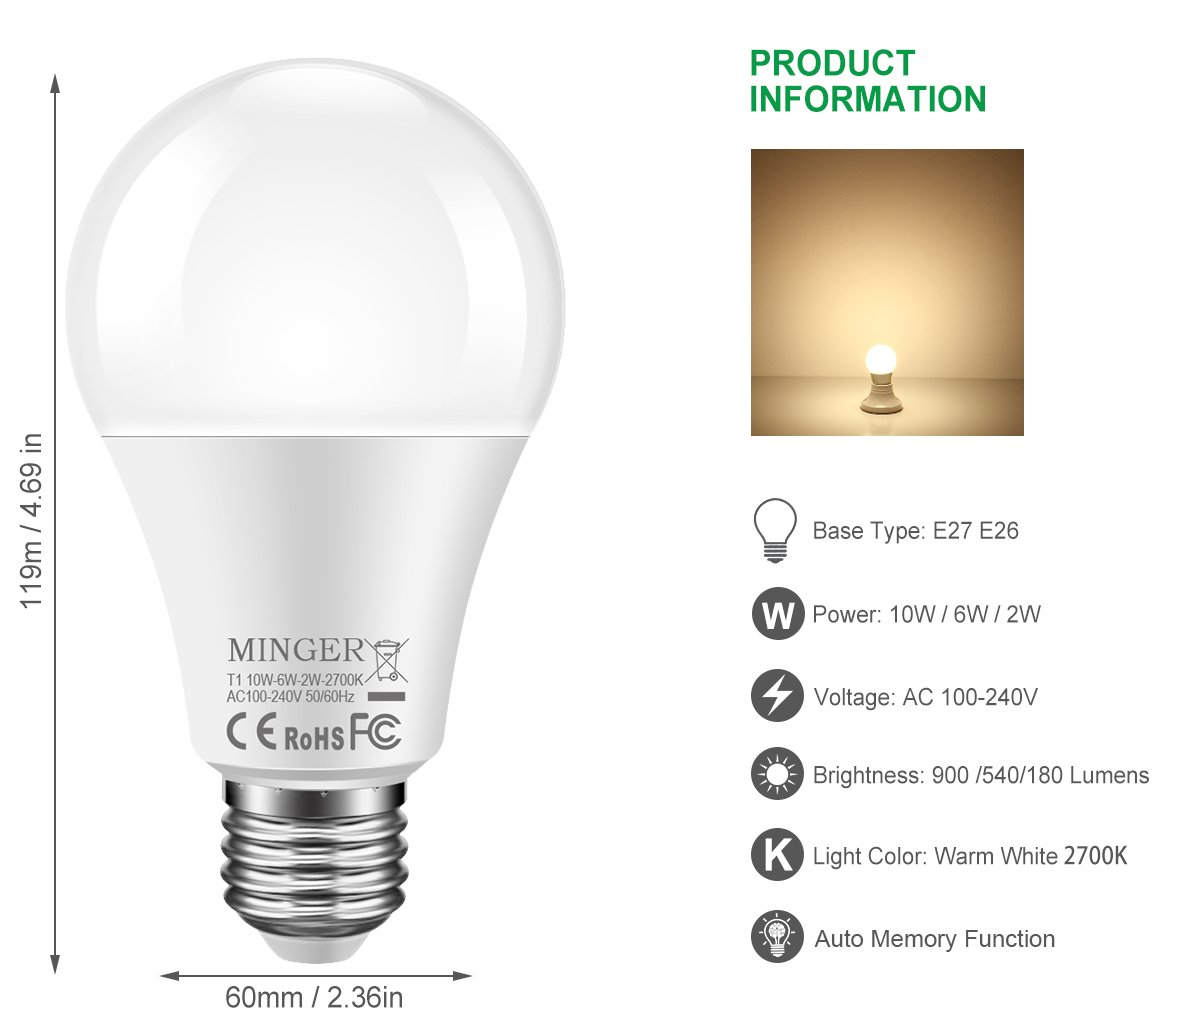 3 Brightness Led Light Bulb Work With Normal Lamp Switch Not Way Two Lightbulbs On A Parallel Circuit One Bulbs Dimmable A19 10w 6w 2w 900 540 180 Lumen Soft White 2700k